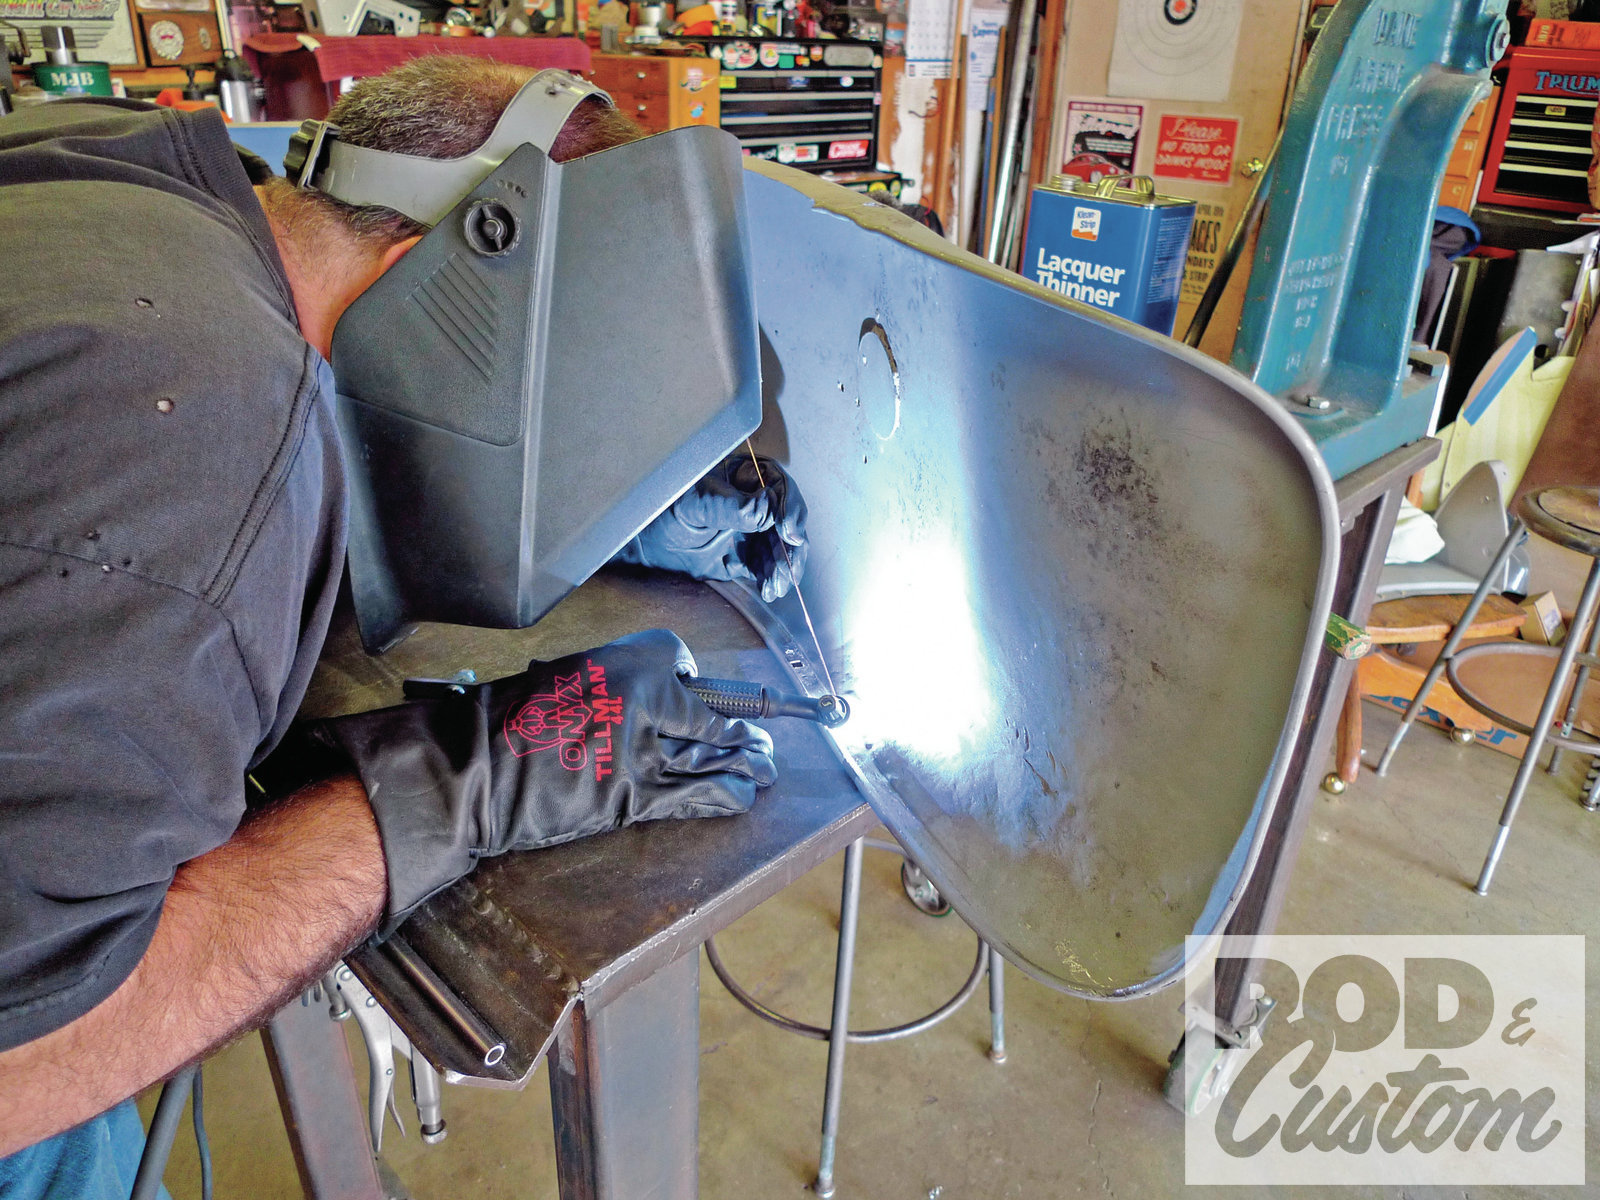 12. With the necessary preparations made, Strube gets to welding once again and the previously dislodged reinforcement becomes one with the fender once more.